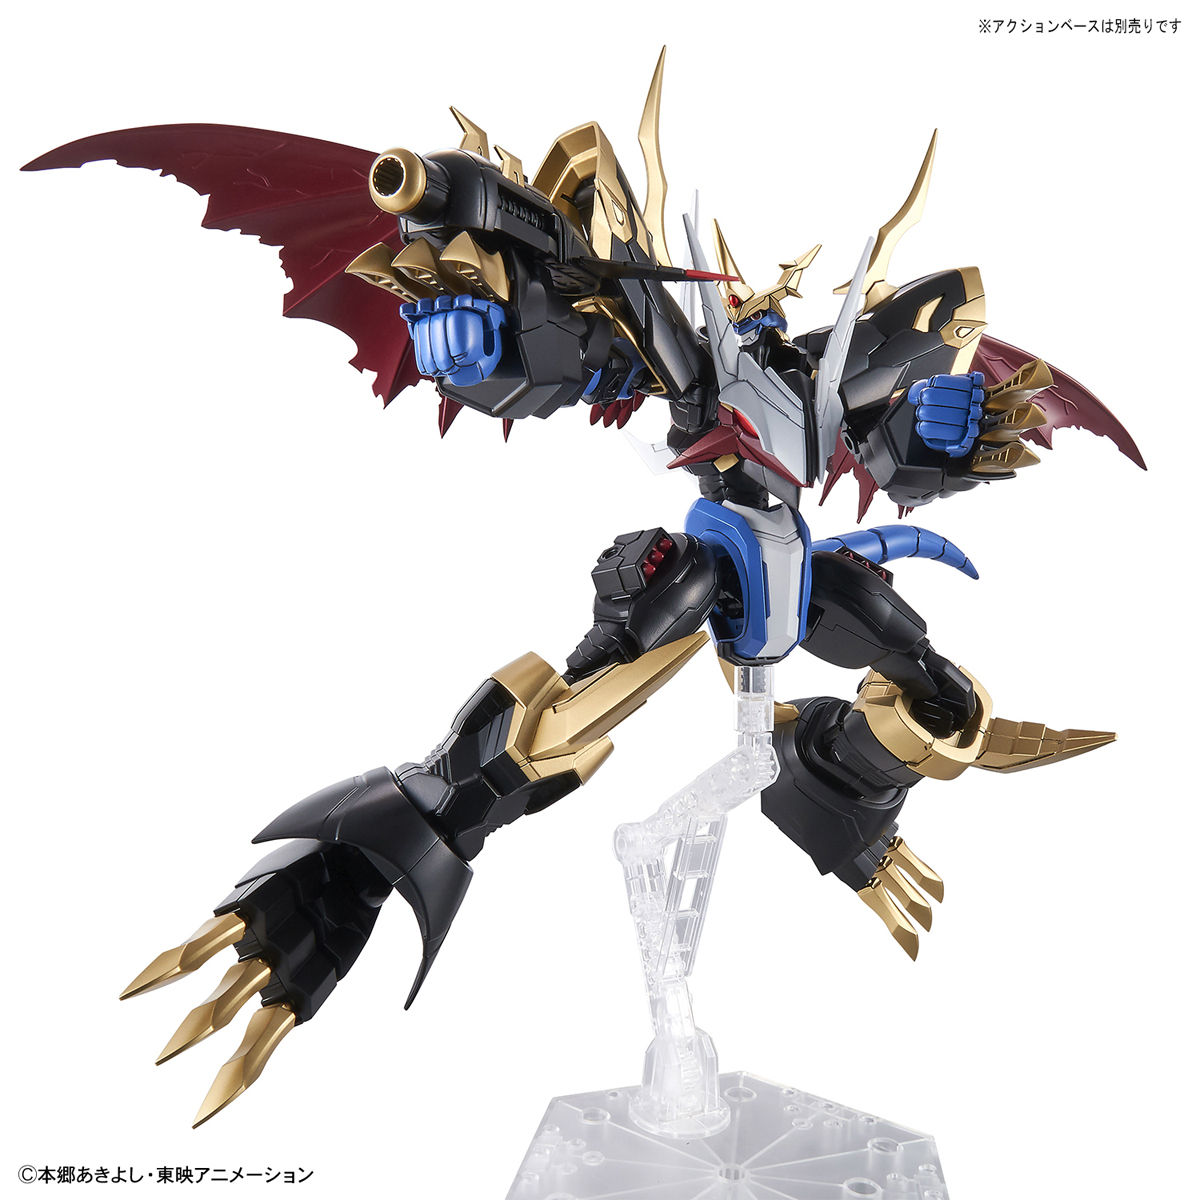 Figure-rise Standard Amplified インペリアルドラモン 06